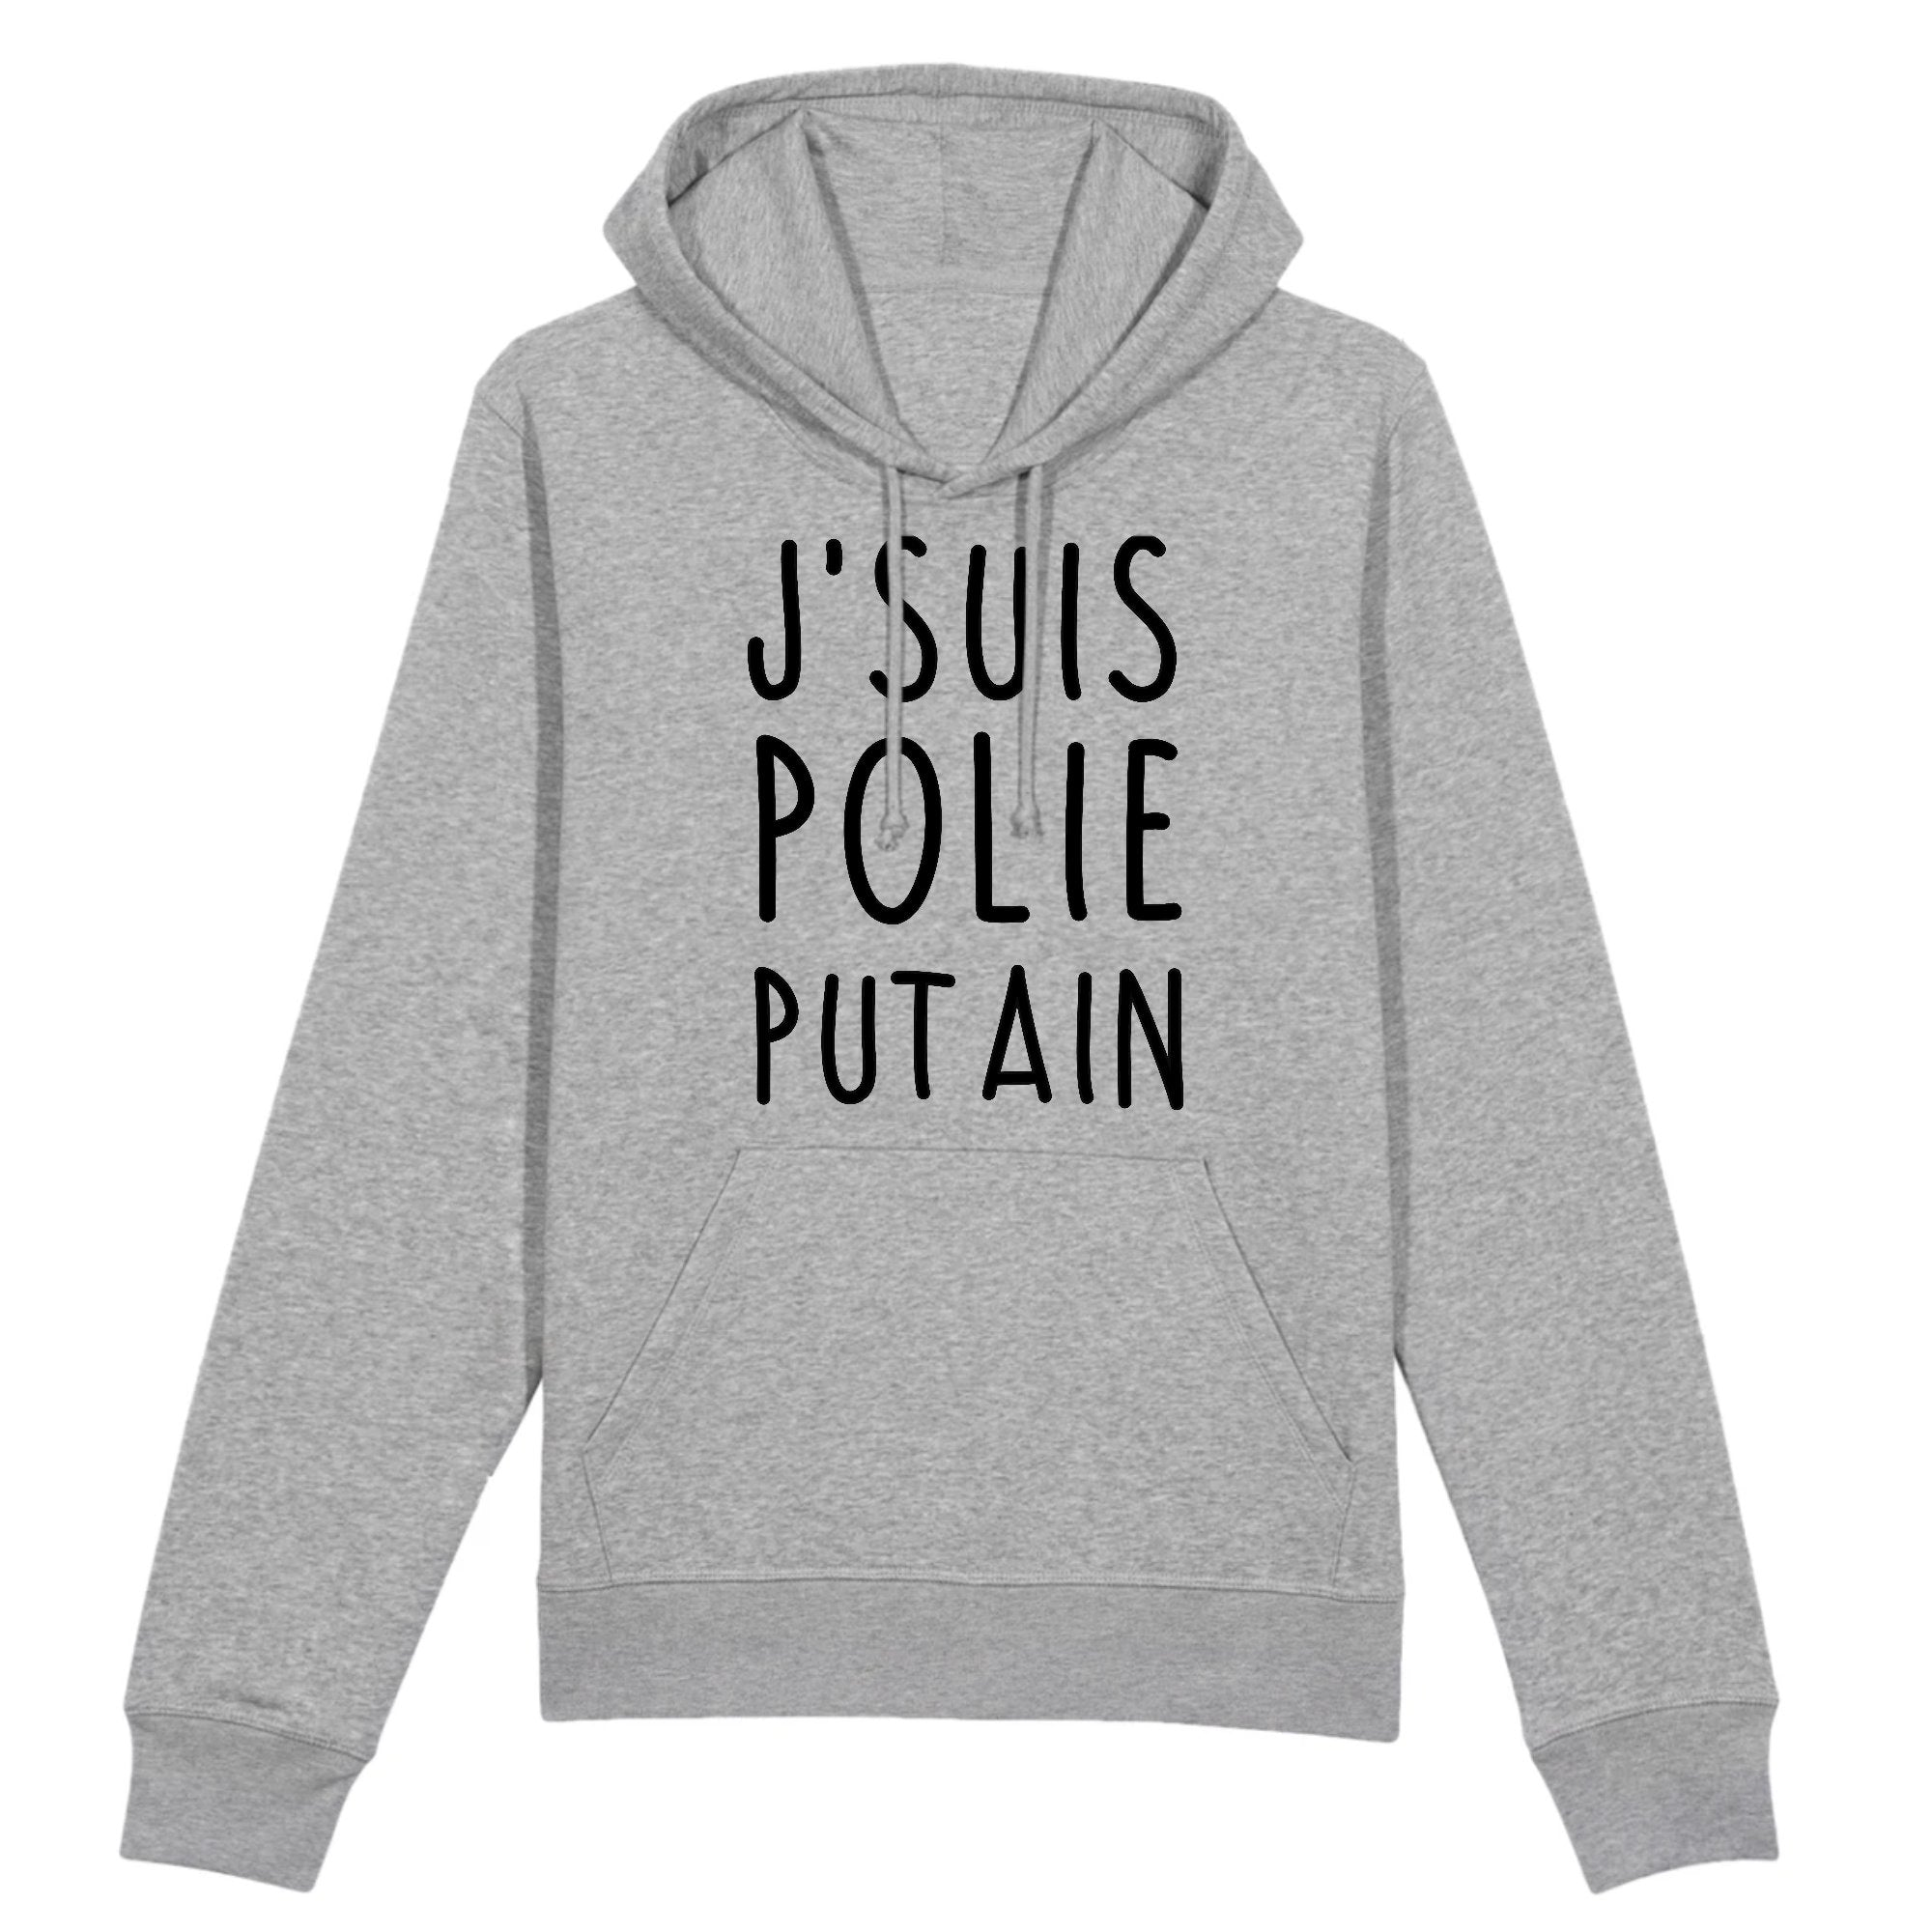 Sweat Capuche Adulte J'suis polie putain